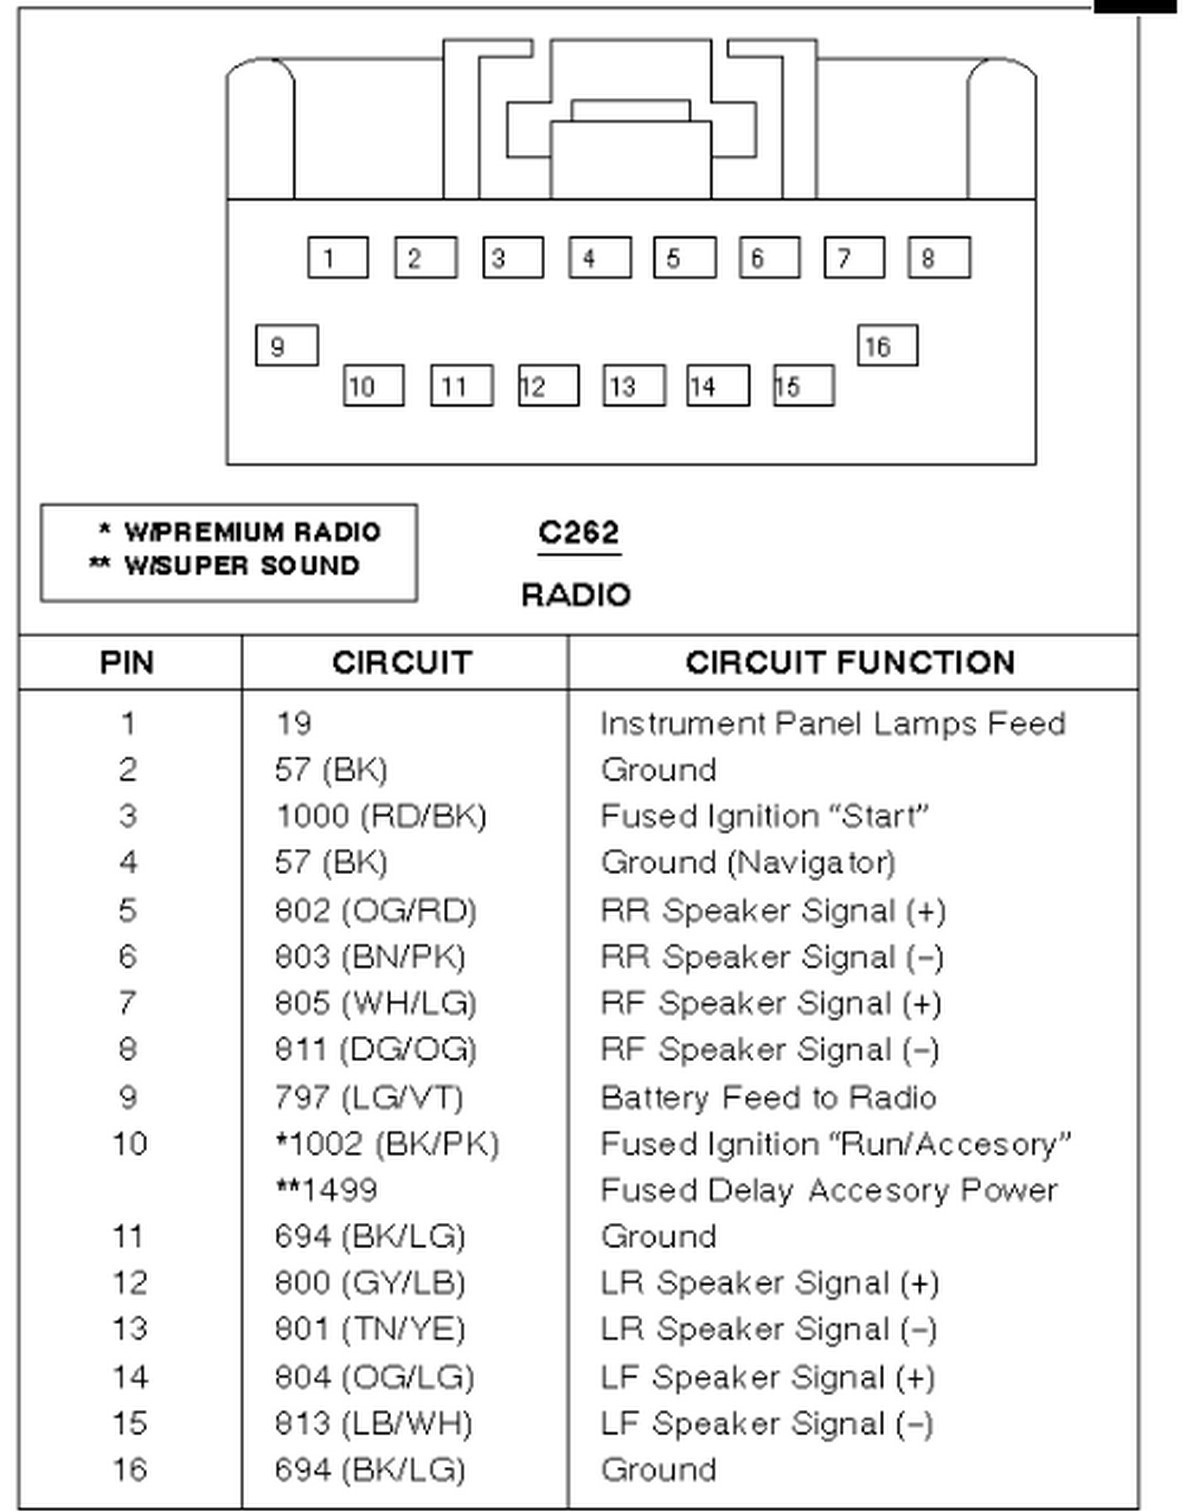 2011 Ford Fiesta Radio Wiring Diagram - Fusebox and Wiring Diagram schematic-lover  - schematic-lover.parliamoneassieme.it | Ford Festiva Stereo Wiring Diagram |  | schematic-lover.parliamoneassieme.it